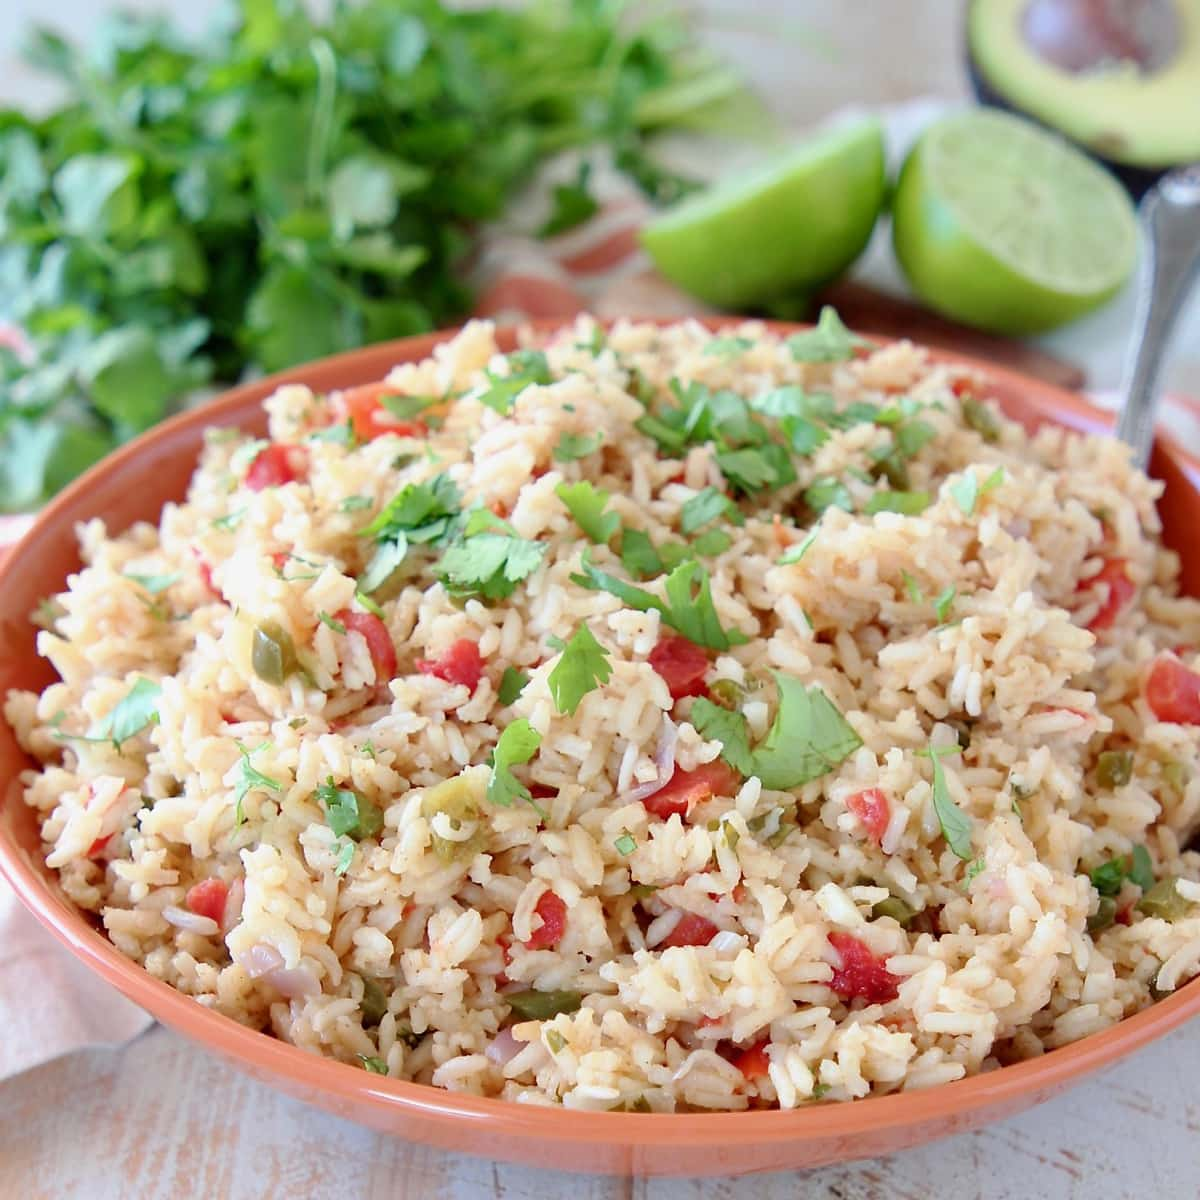 Mexican rice in orange bowl with cilantro and limes